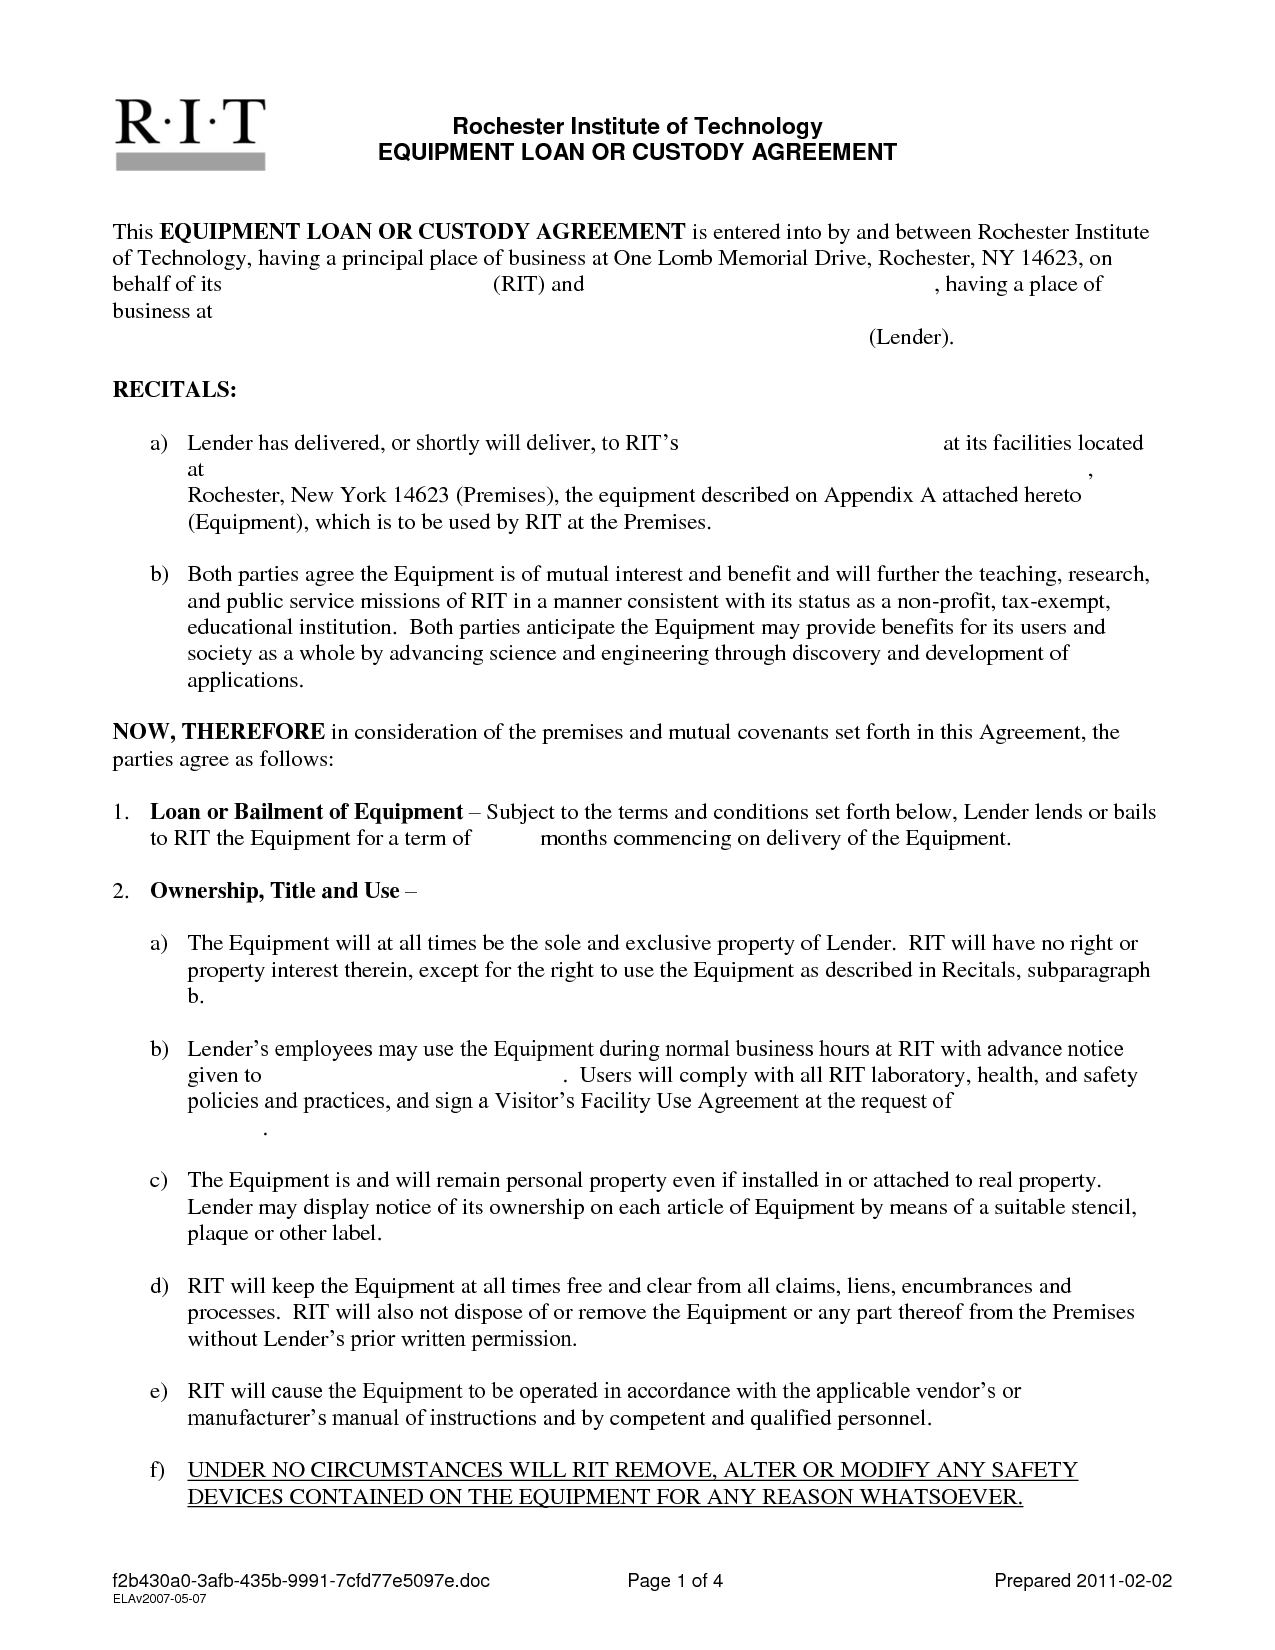 Free Loan Agreement Template Loan Contract Template 26 Examples In Word Pdf  Free, 5 Loan Agreement Templates To Write Perfect Agreements, Loan  Agreement ...  Free Loan Template